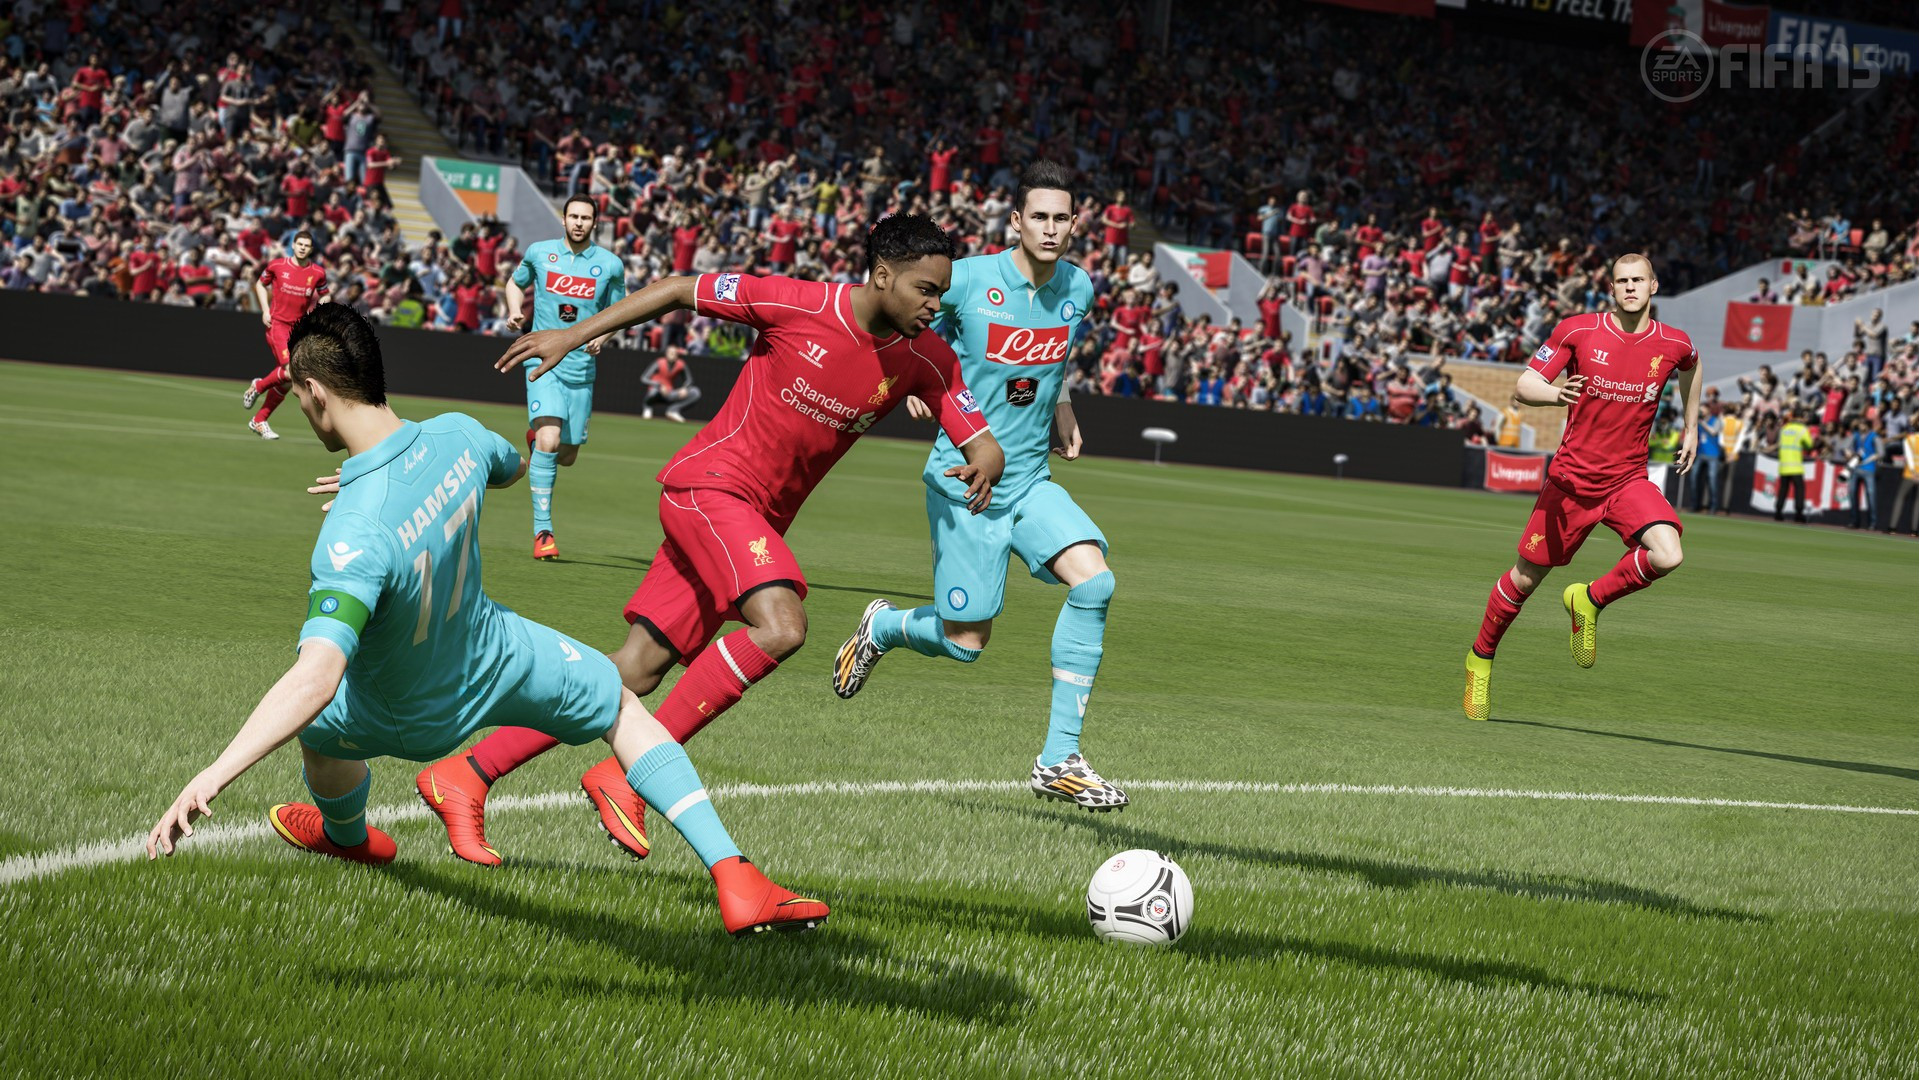 download fifa 15 for pc without license key